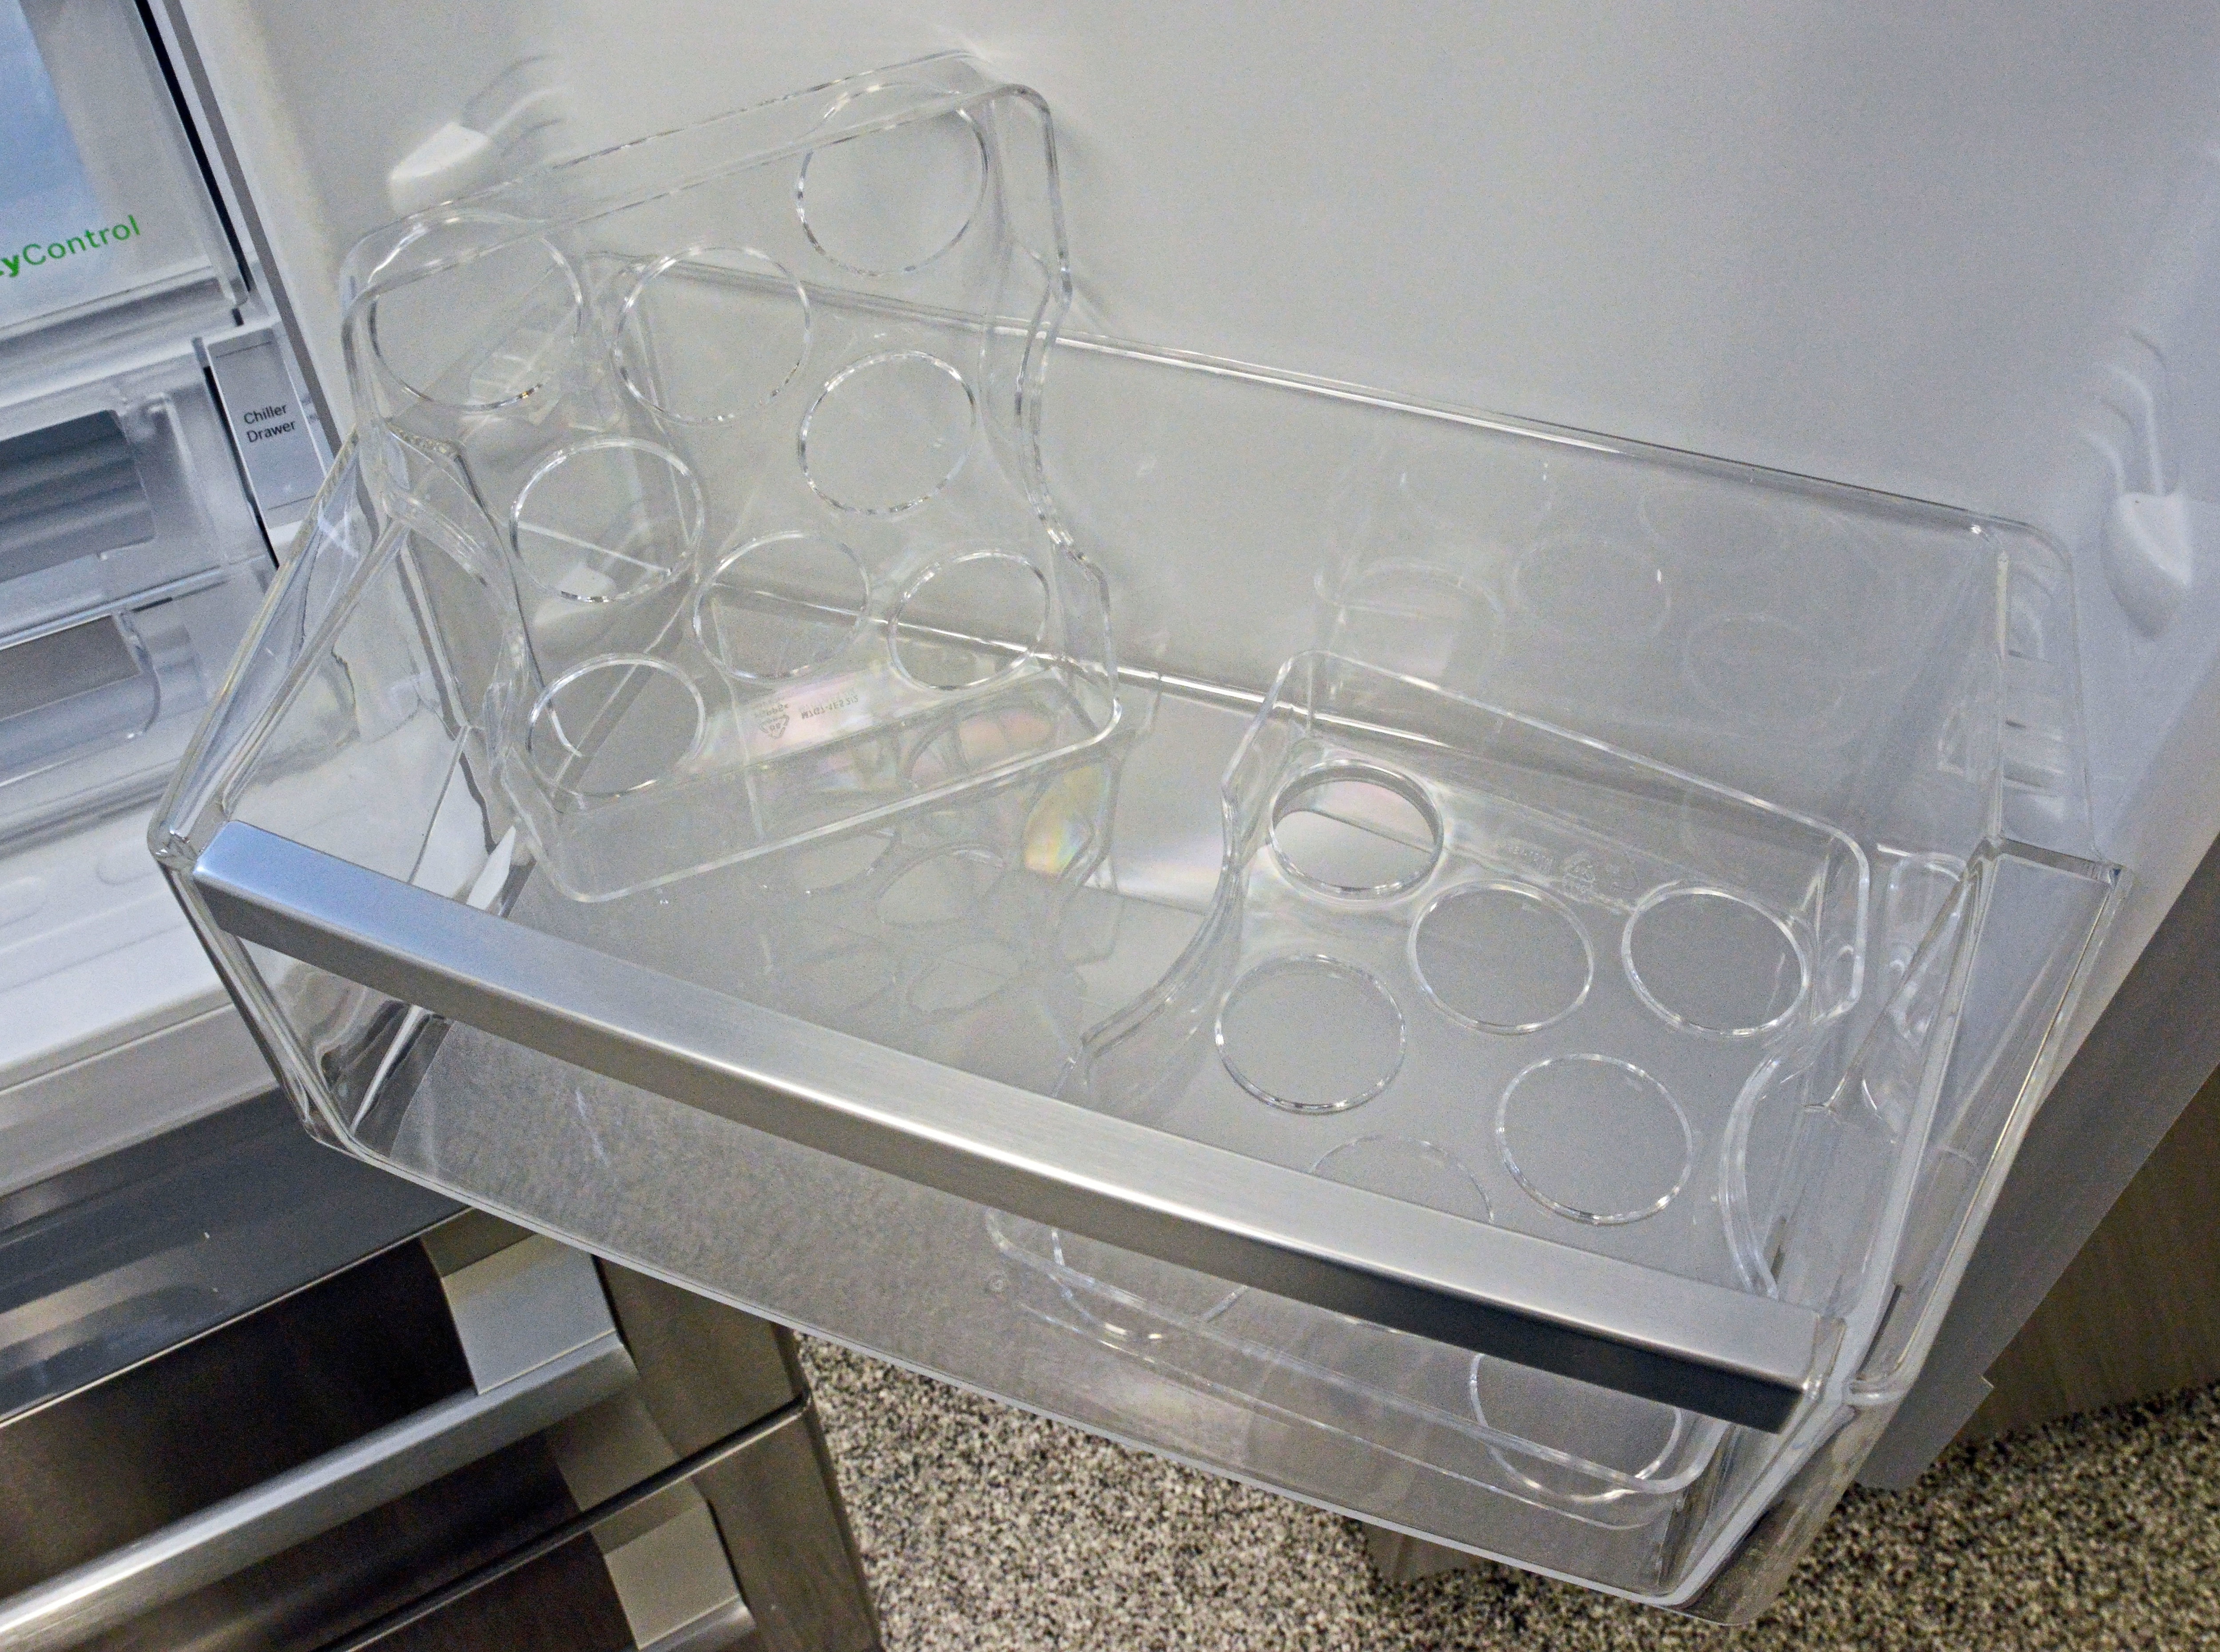 You get two egg trays, each able to hold eight eggs. Whether you fill one or both, it makes for some interesting math...